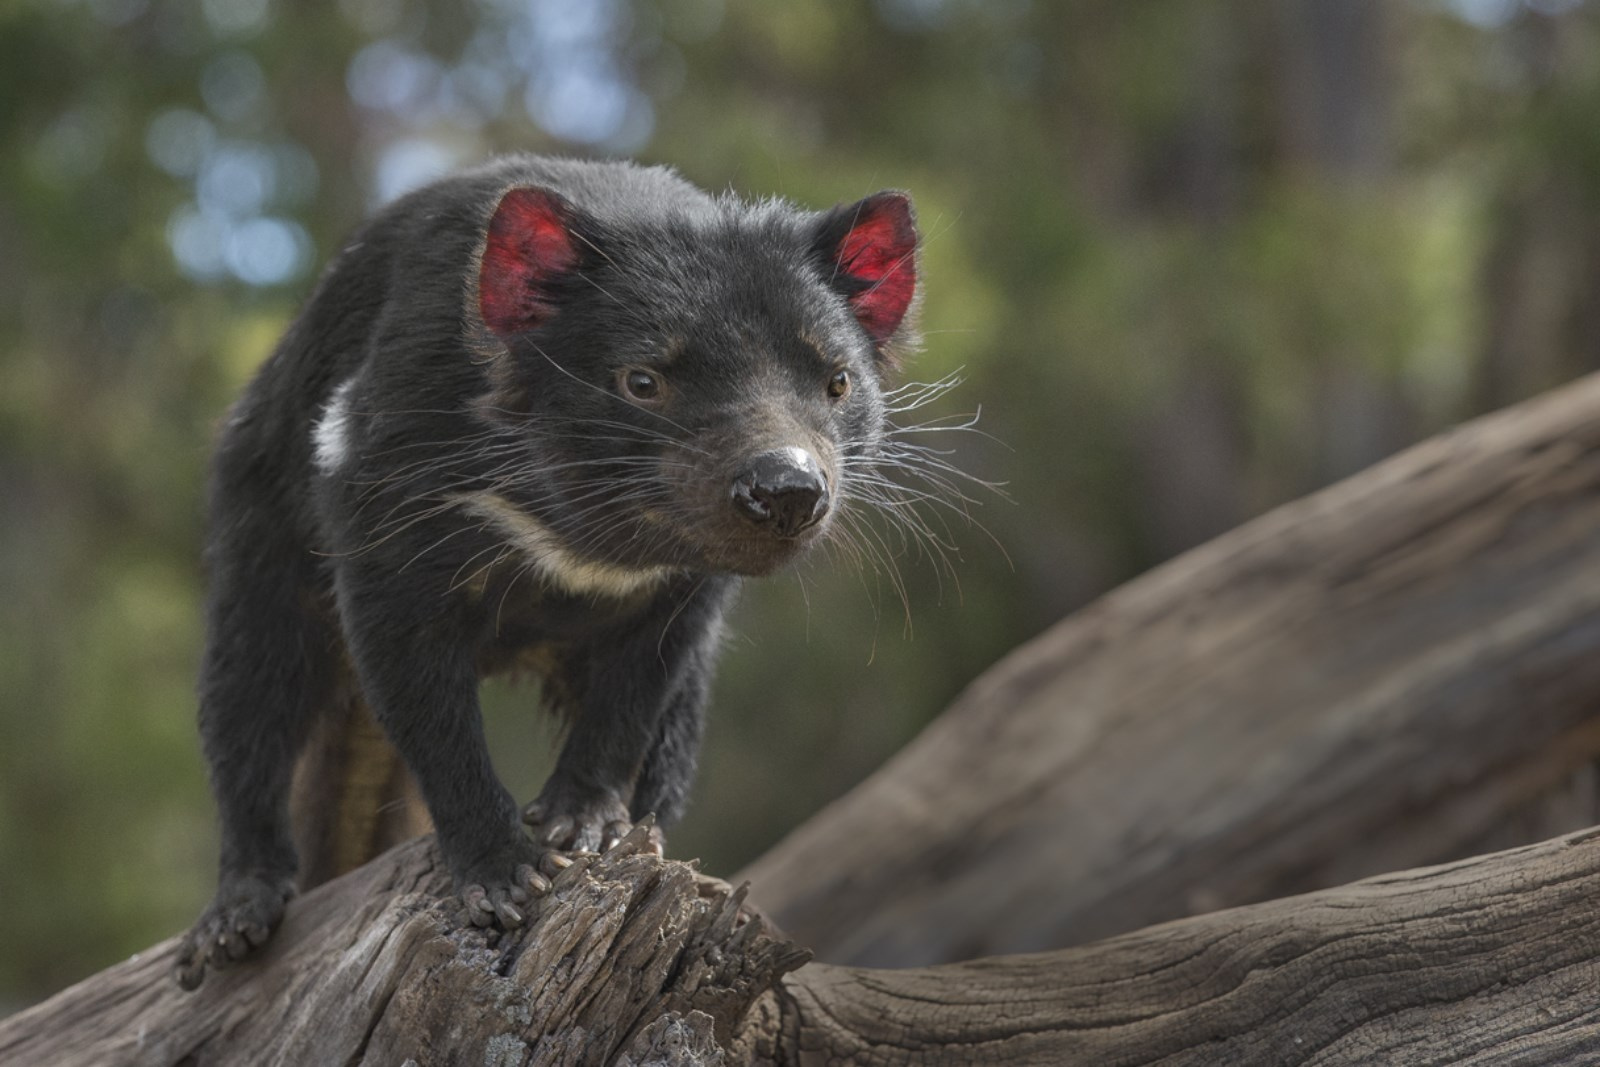 Tasmanian devil balancing on branch